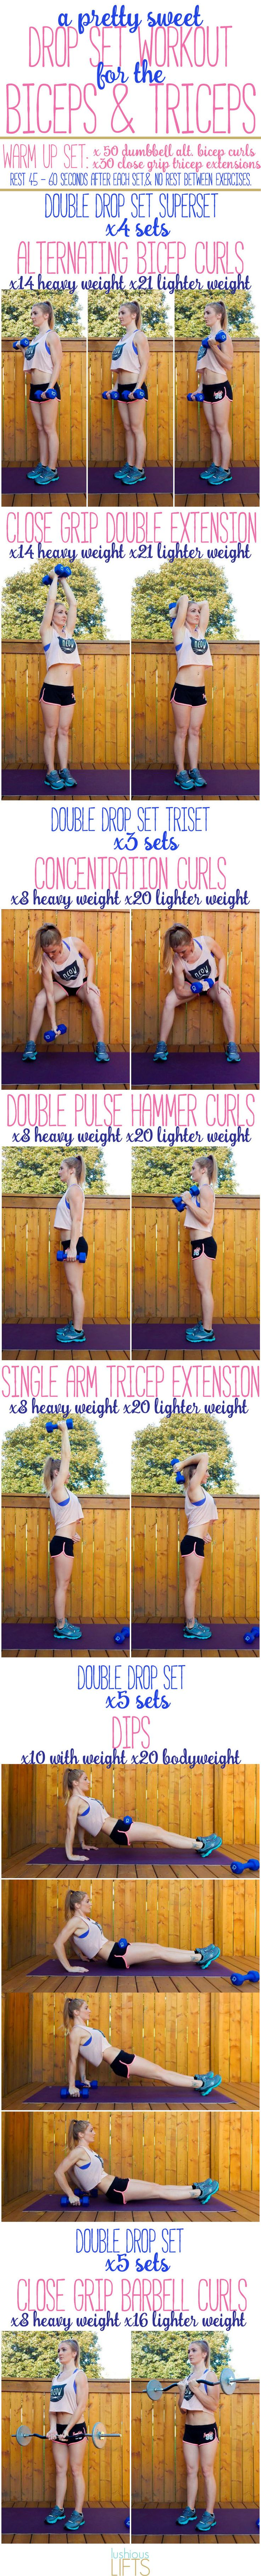 A Pretty Sweet Drop Set Workout that you're going to love for the #Biceps & Triceps    lushiouslifts.com #weighttraining